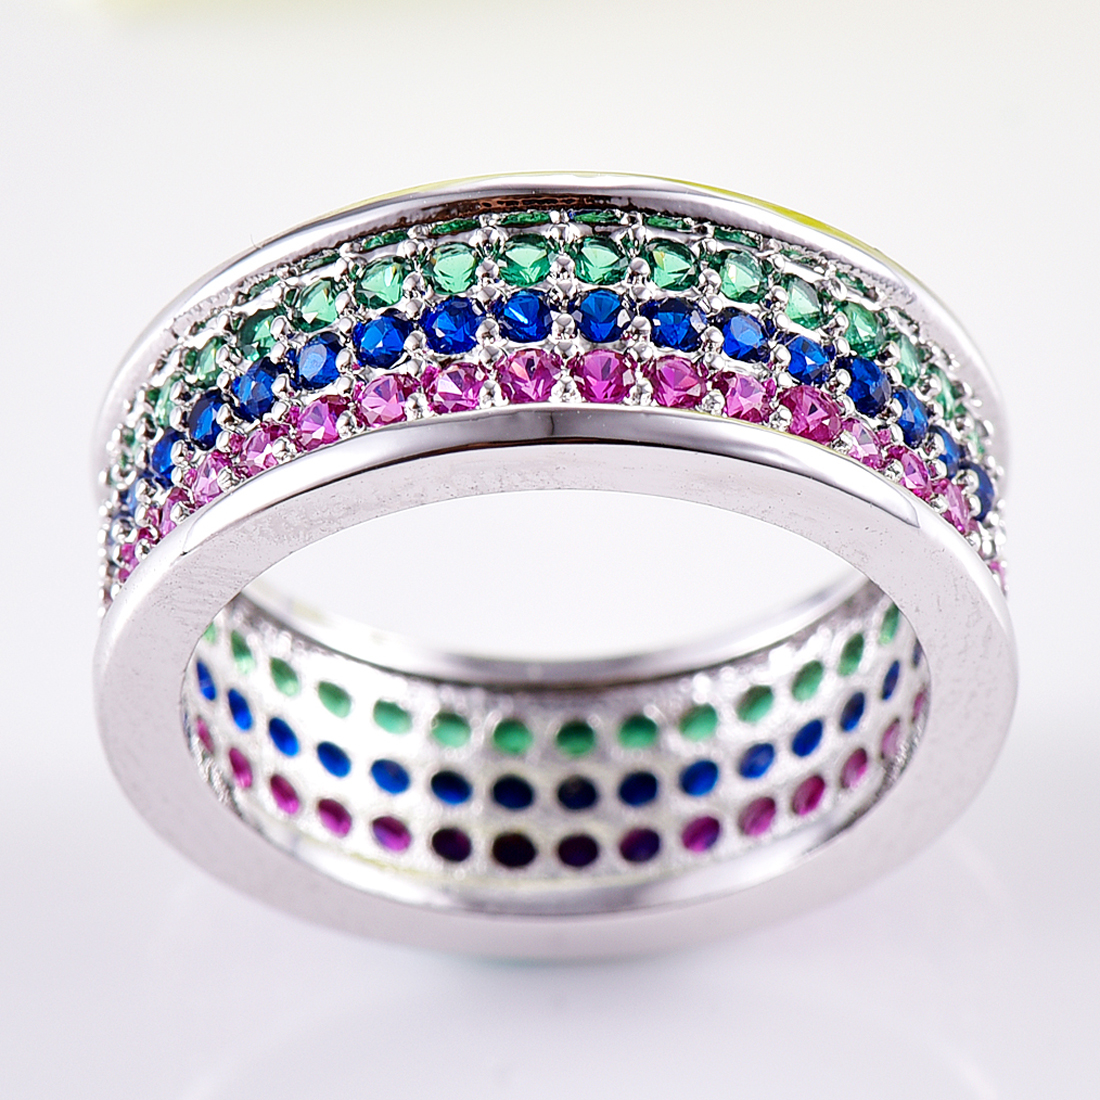 Women Fashion Red&blue&green ring High quality jewelry classic ring gift for women man trendy ring Size 6 7 8 9 10